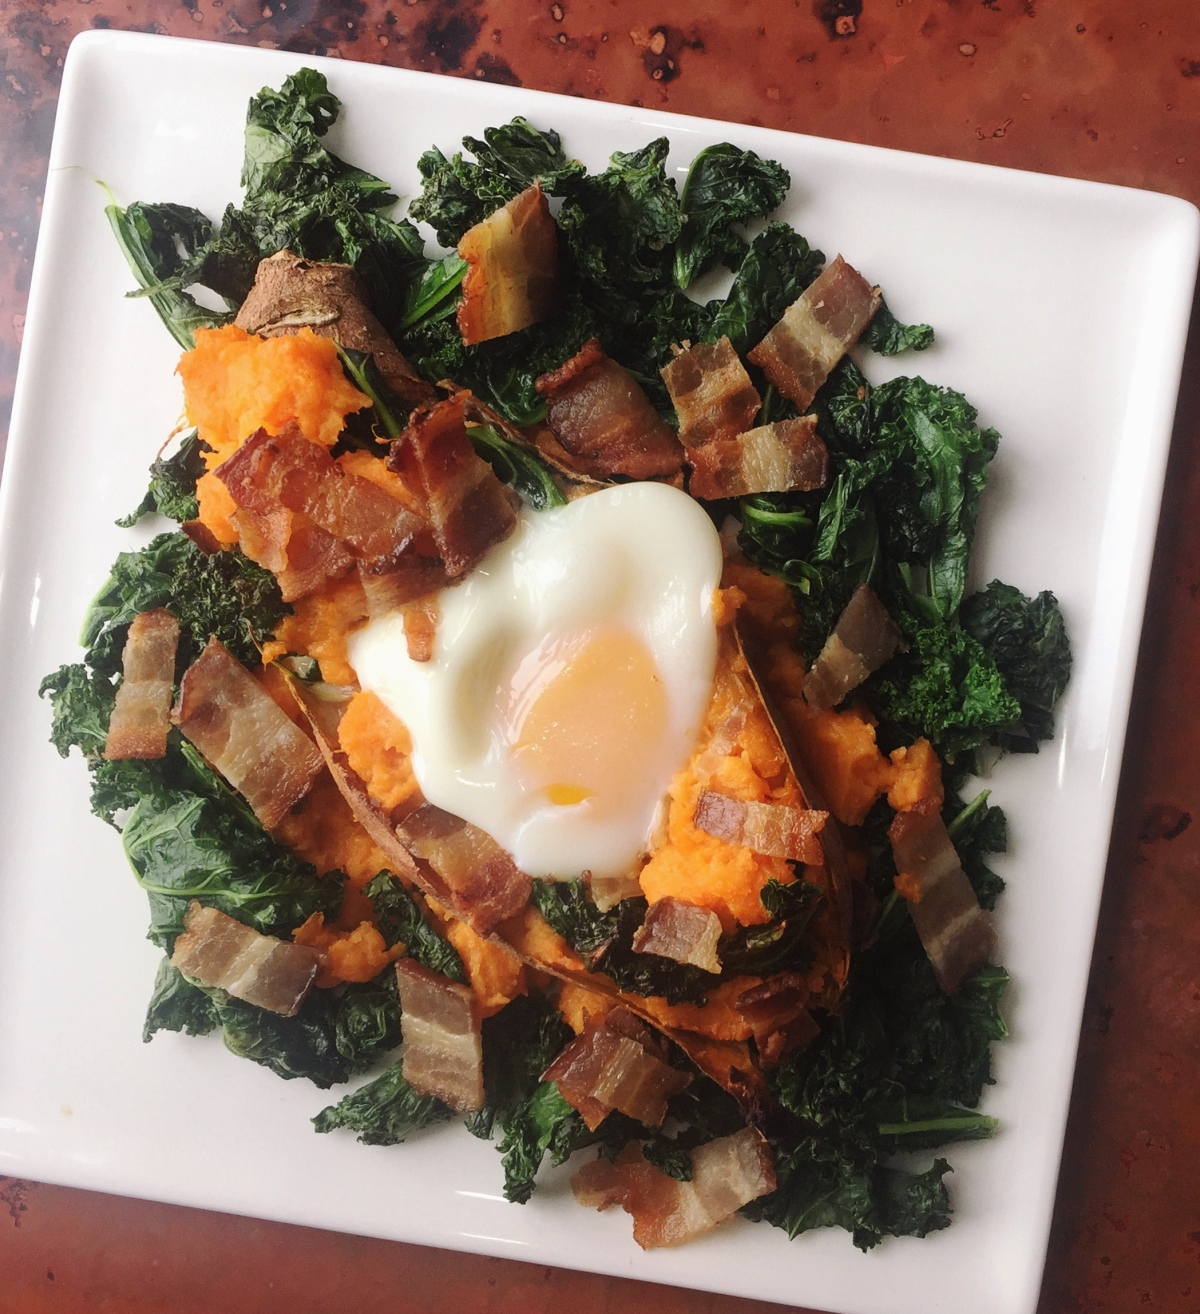 Sweet Potato Boats with Kale, Bacon, and Egg